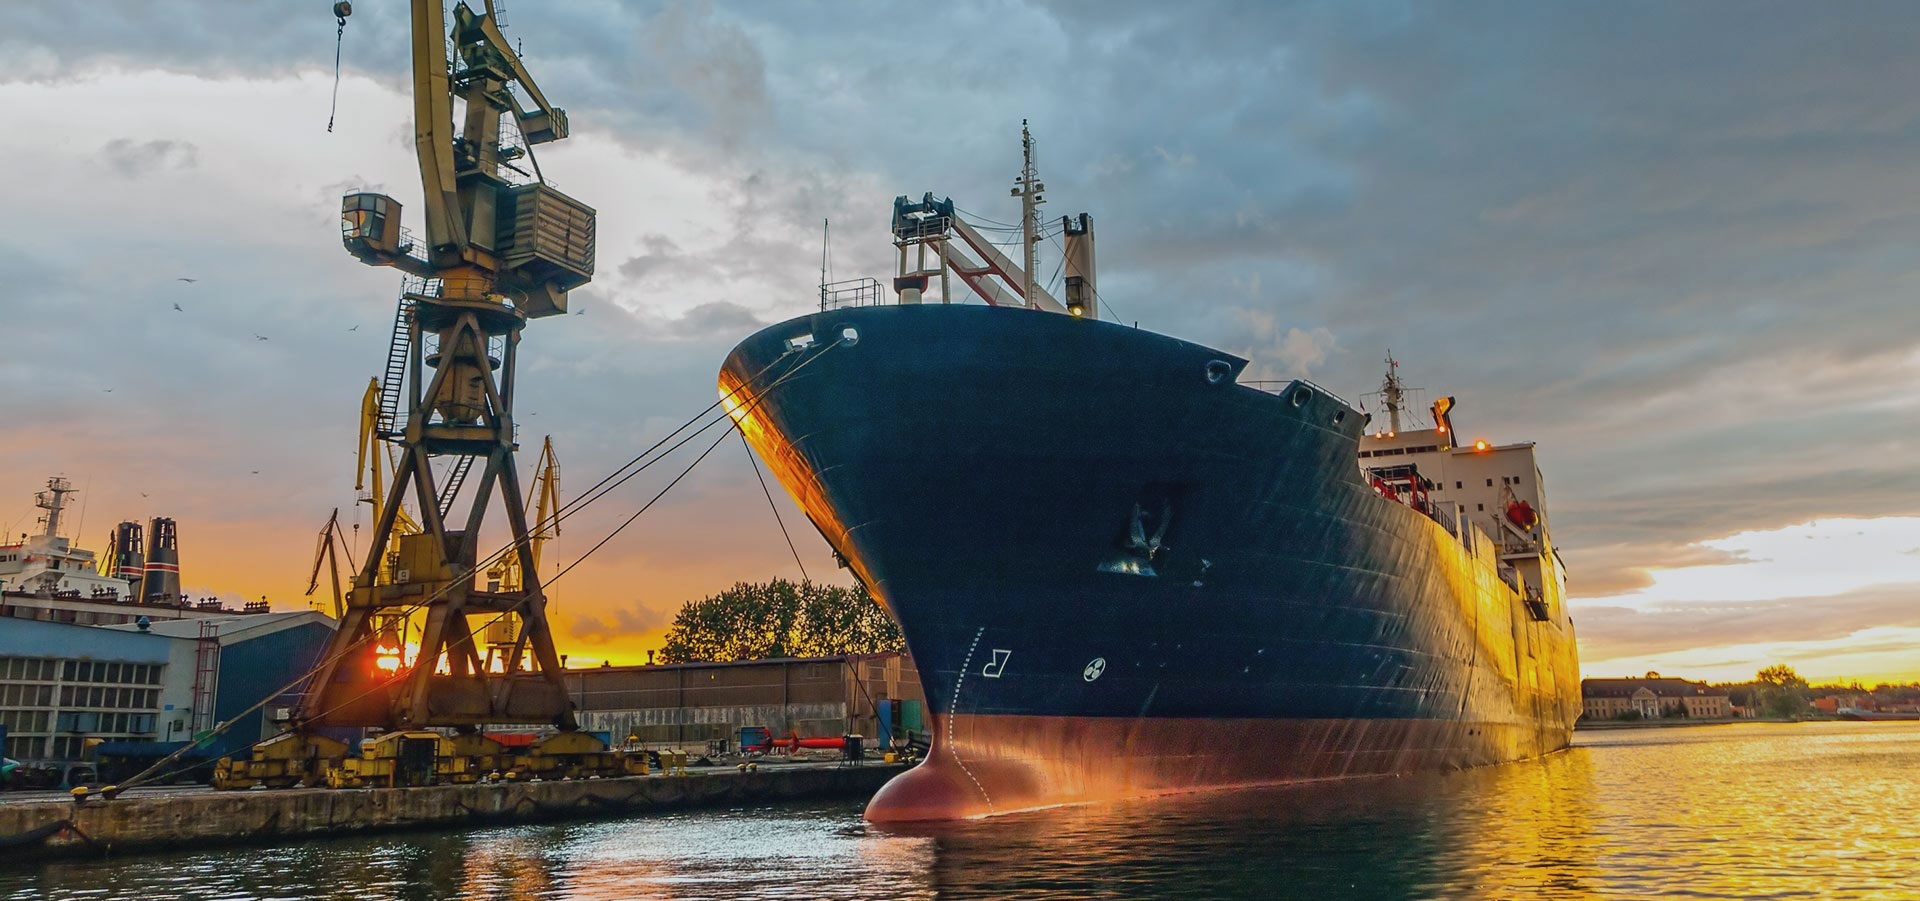 Operating under the highest standards of the shipping industry